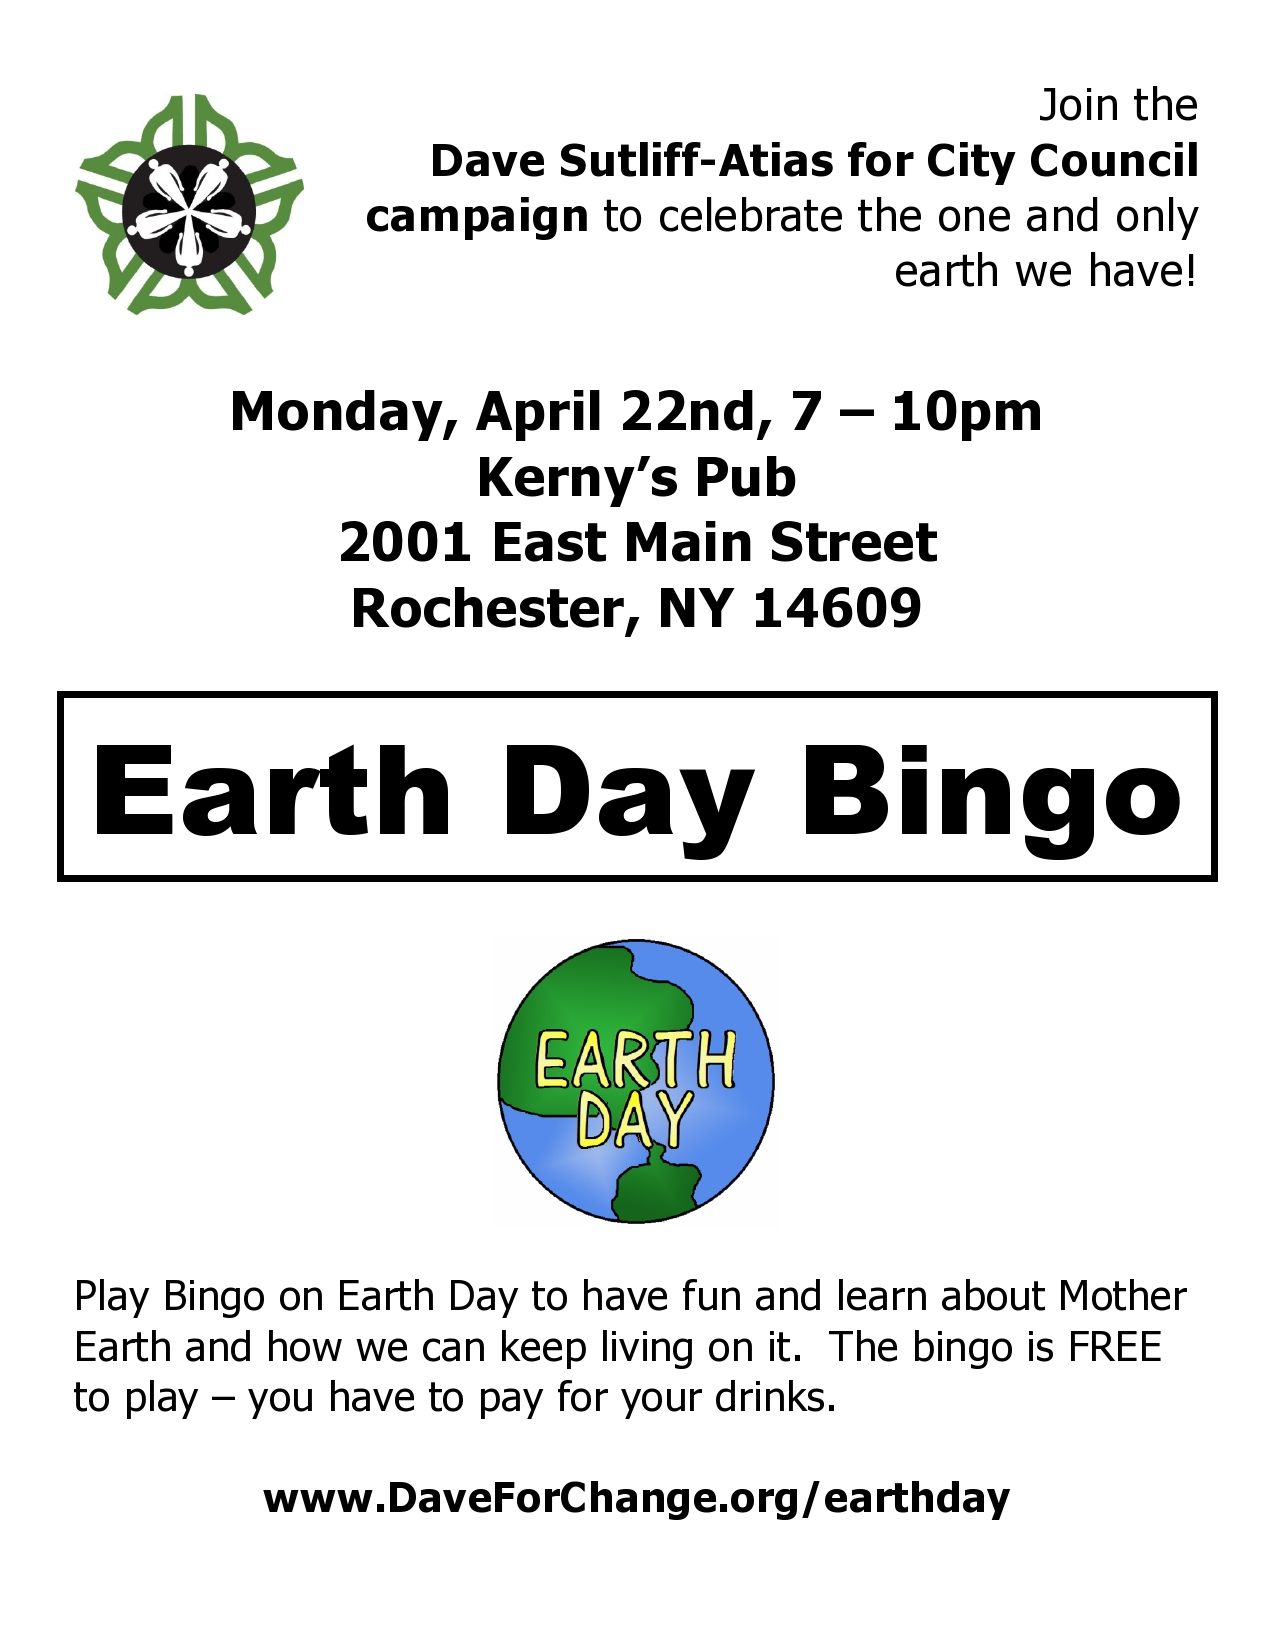 A flyer about Earth Day Bingo